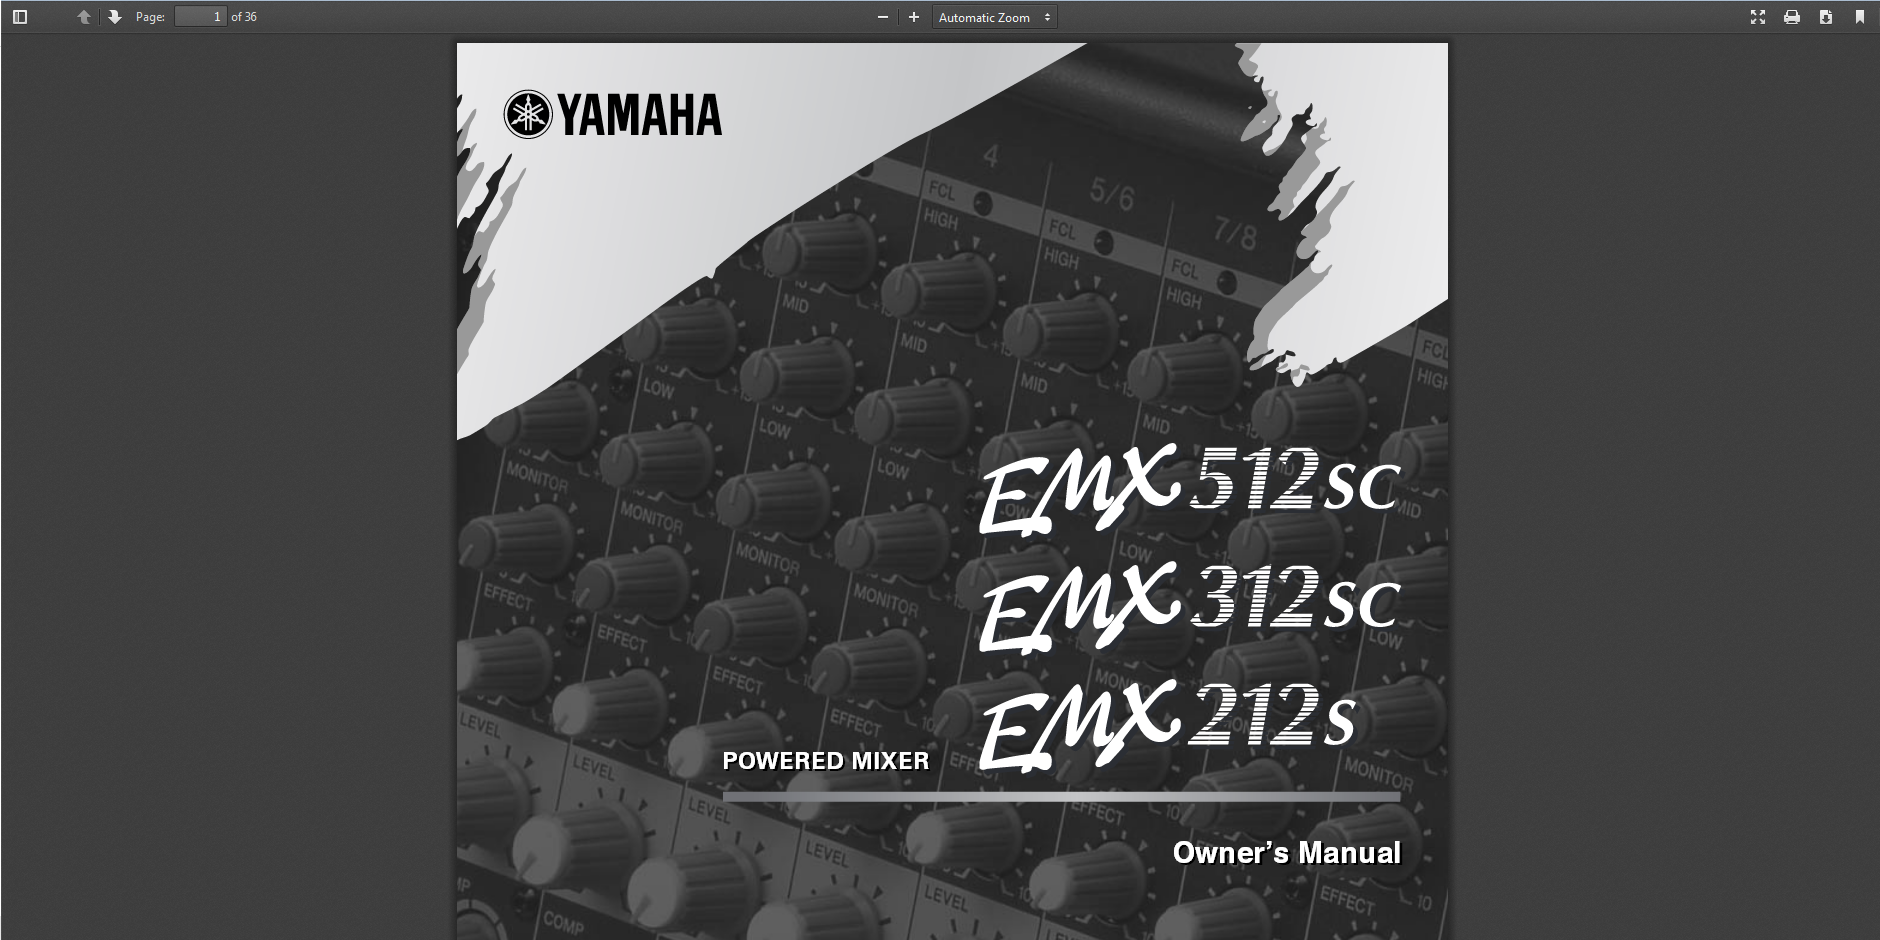 Yamaha Powered Mixer Manual